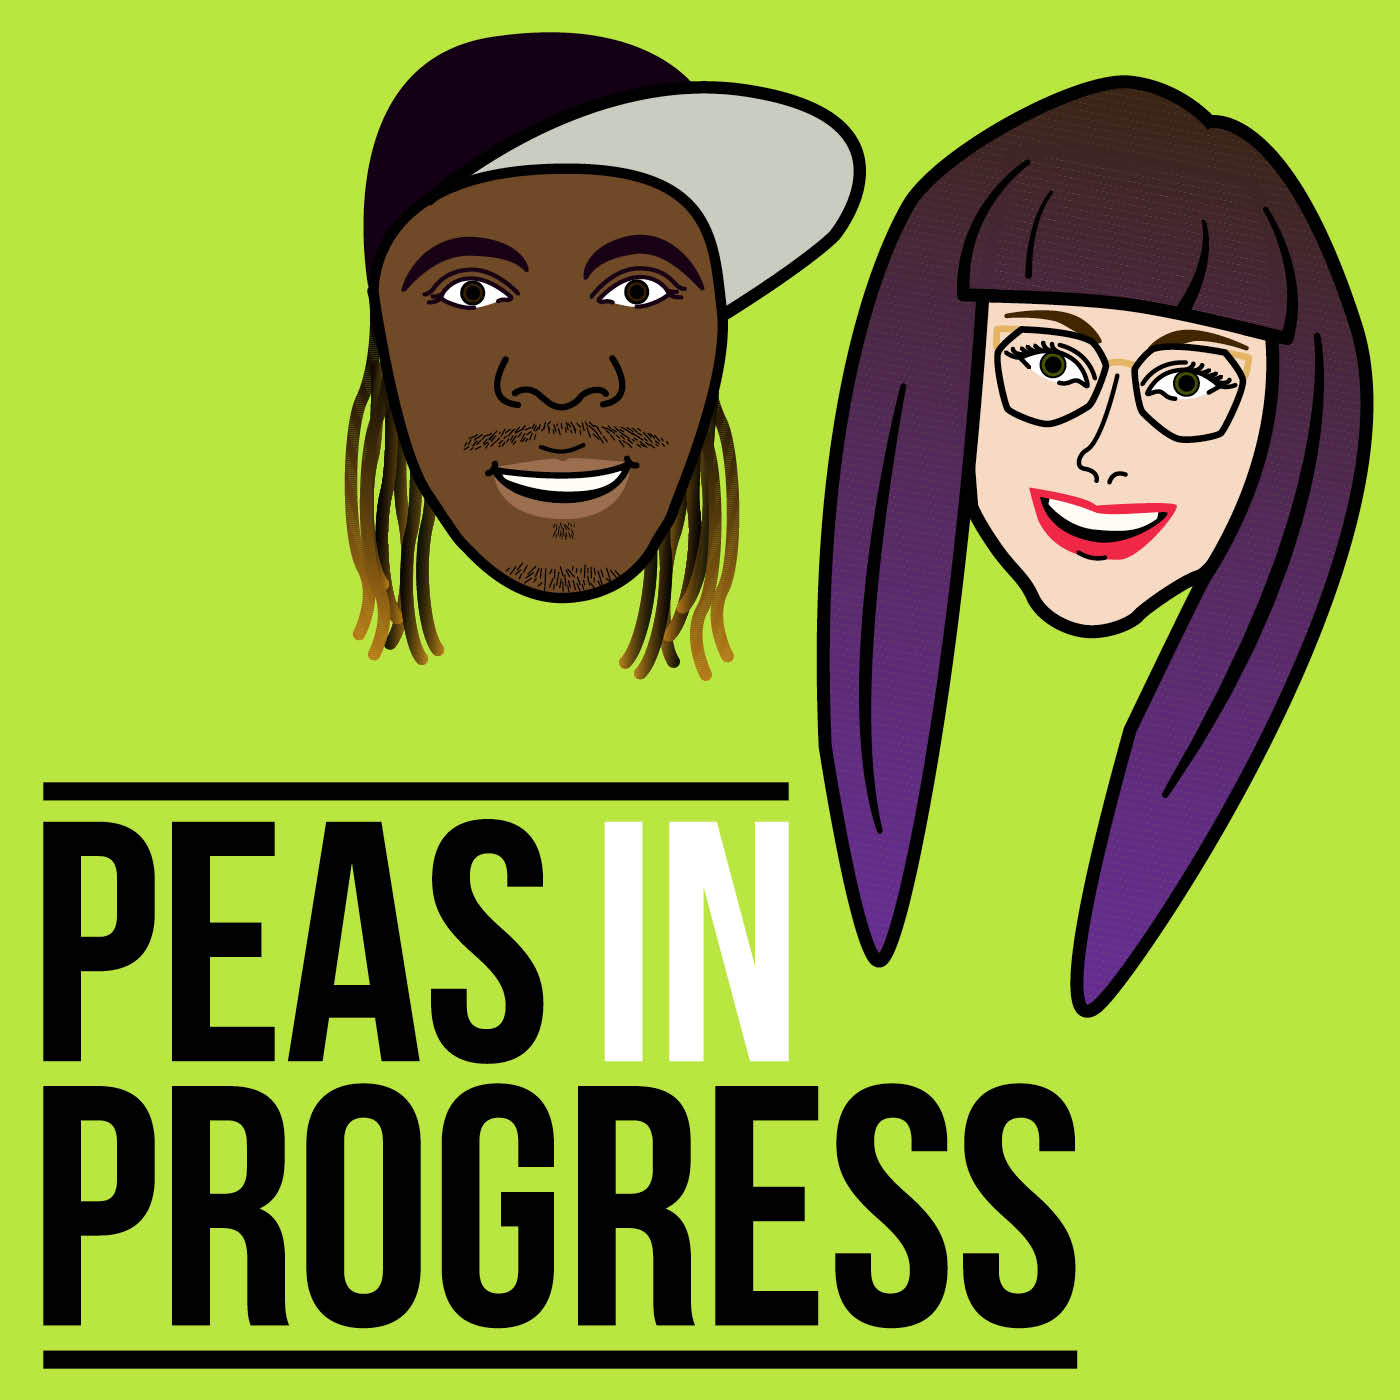 That-Vegan-Wife-Peas-in-Progress-Episode-7-The-V-Word.jpeg